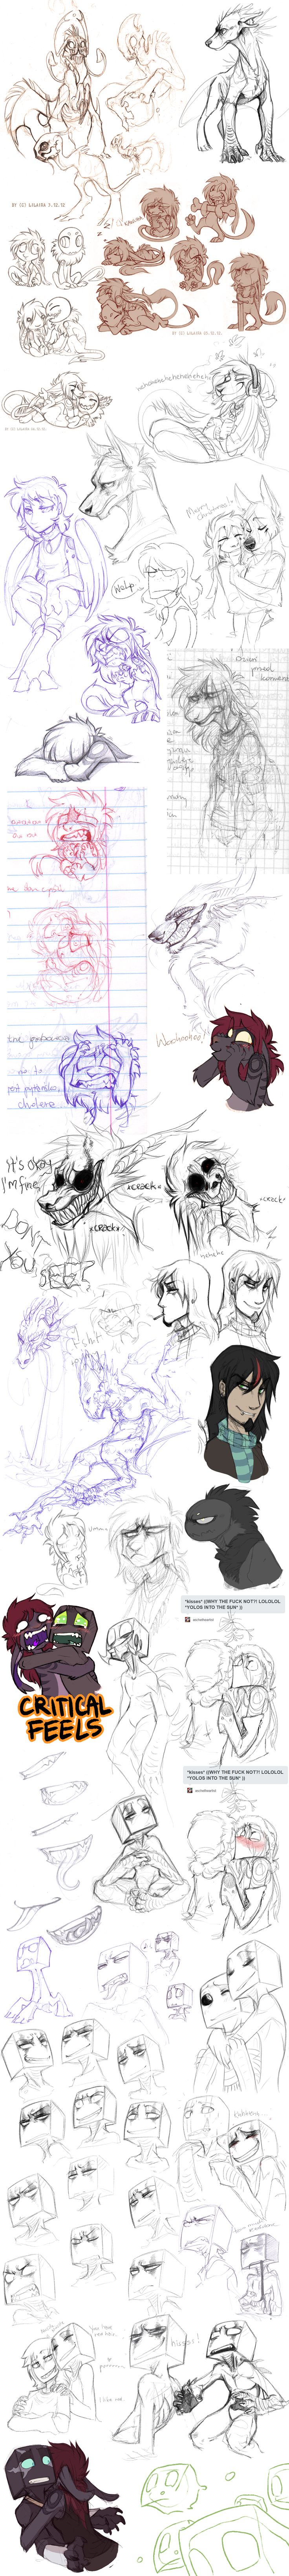 (top half) Sketch dump 45 by LiLaiRa.deviantart.com on @deviantART